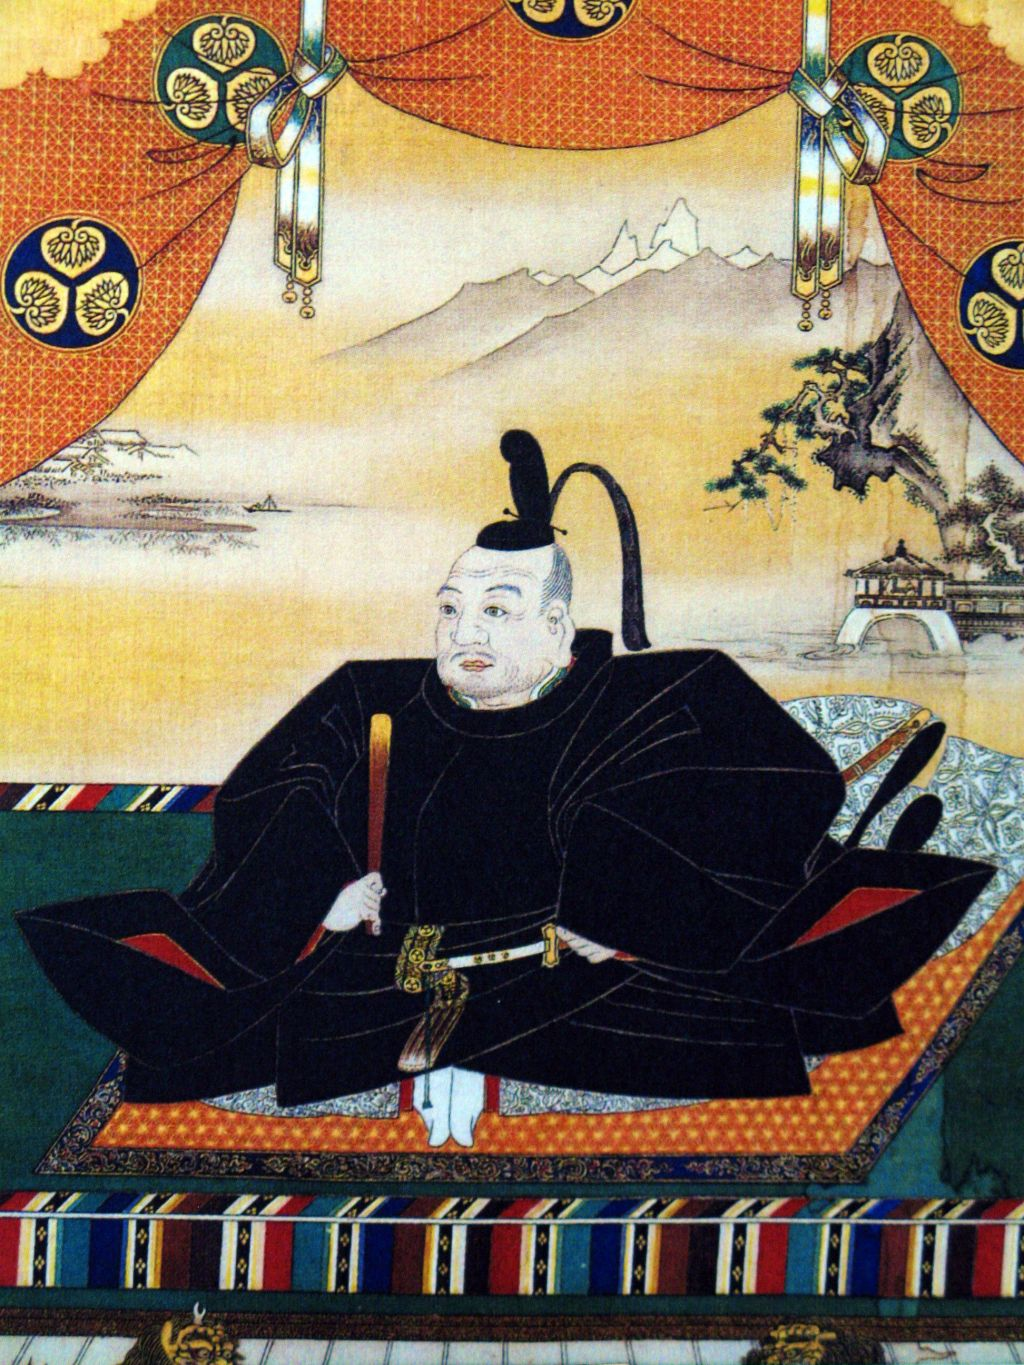 what led to the downfall of the tokugawa shogunate essay Description: an essay surveying the various internal and external factors responsible for the decline of the erstwhile tokugawa shogunate of japan.